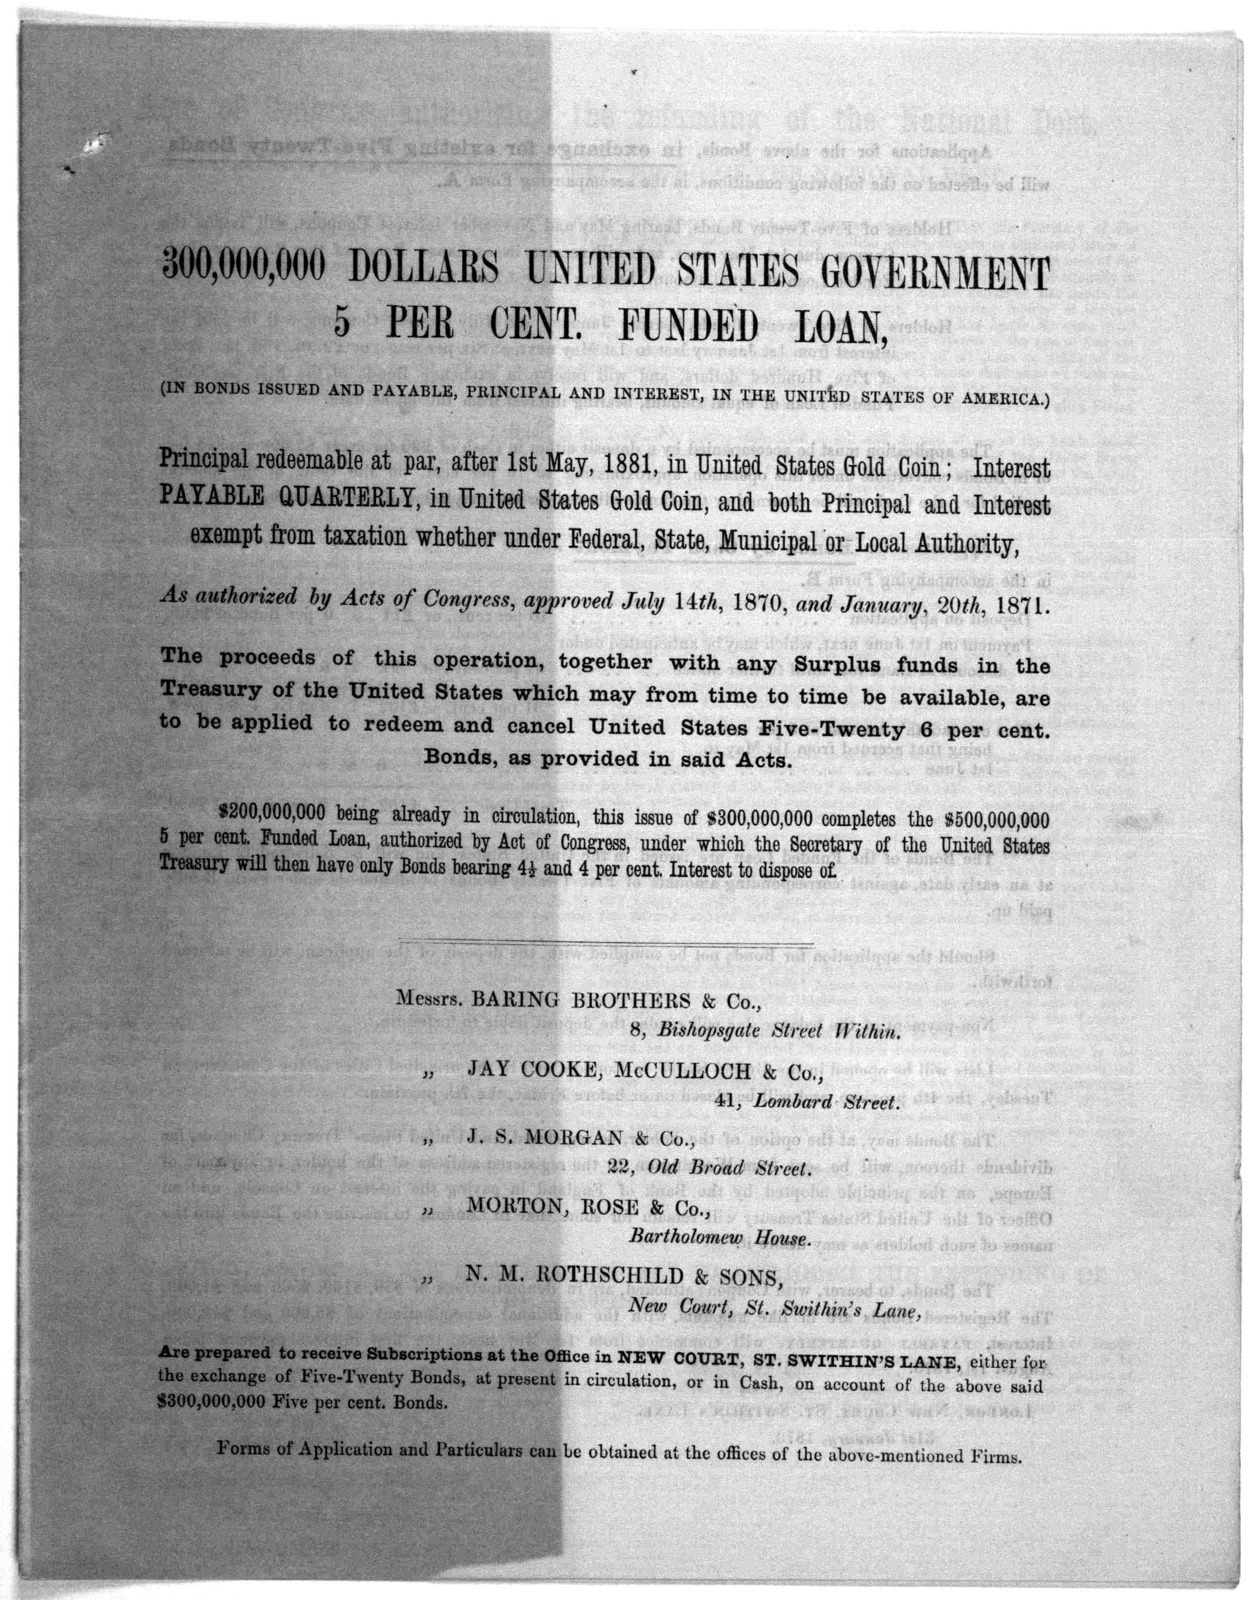 300,000,000 dollars United States government 5 per cent funded loan, (in bonds issued and payable, principal and interest, in the United States of America .... London, New Court St. Swithin's Lane. 31st January, 1873.